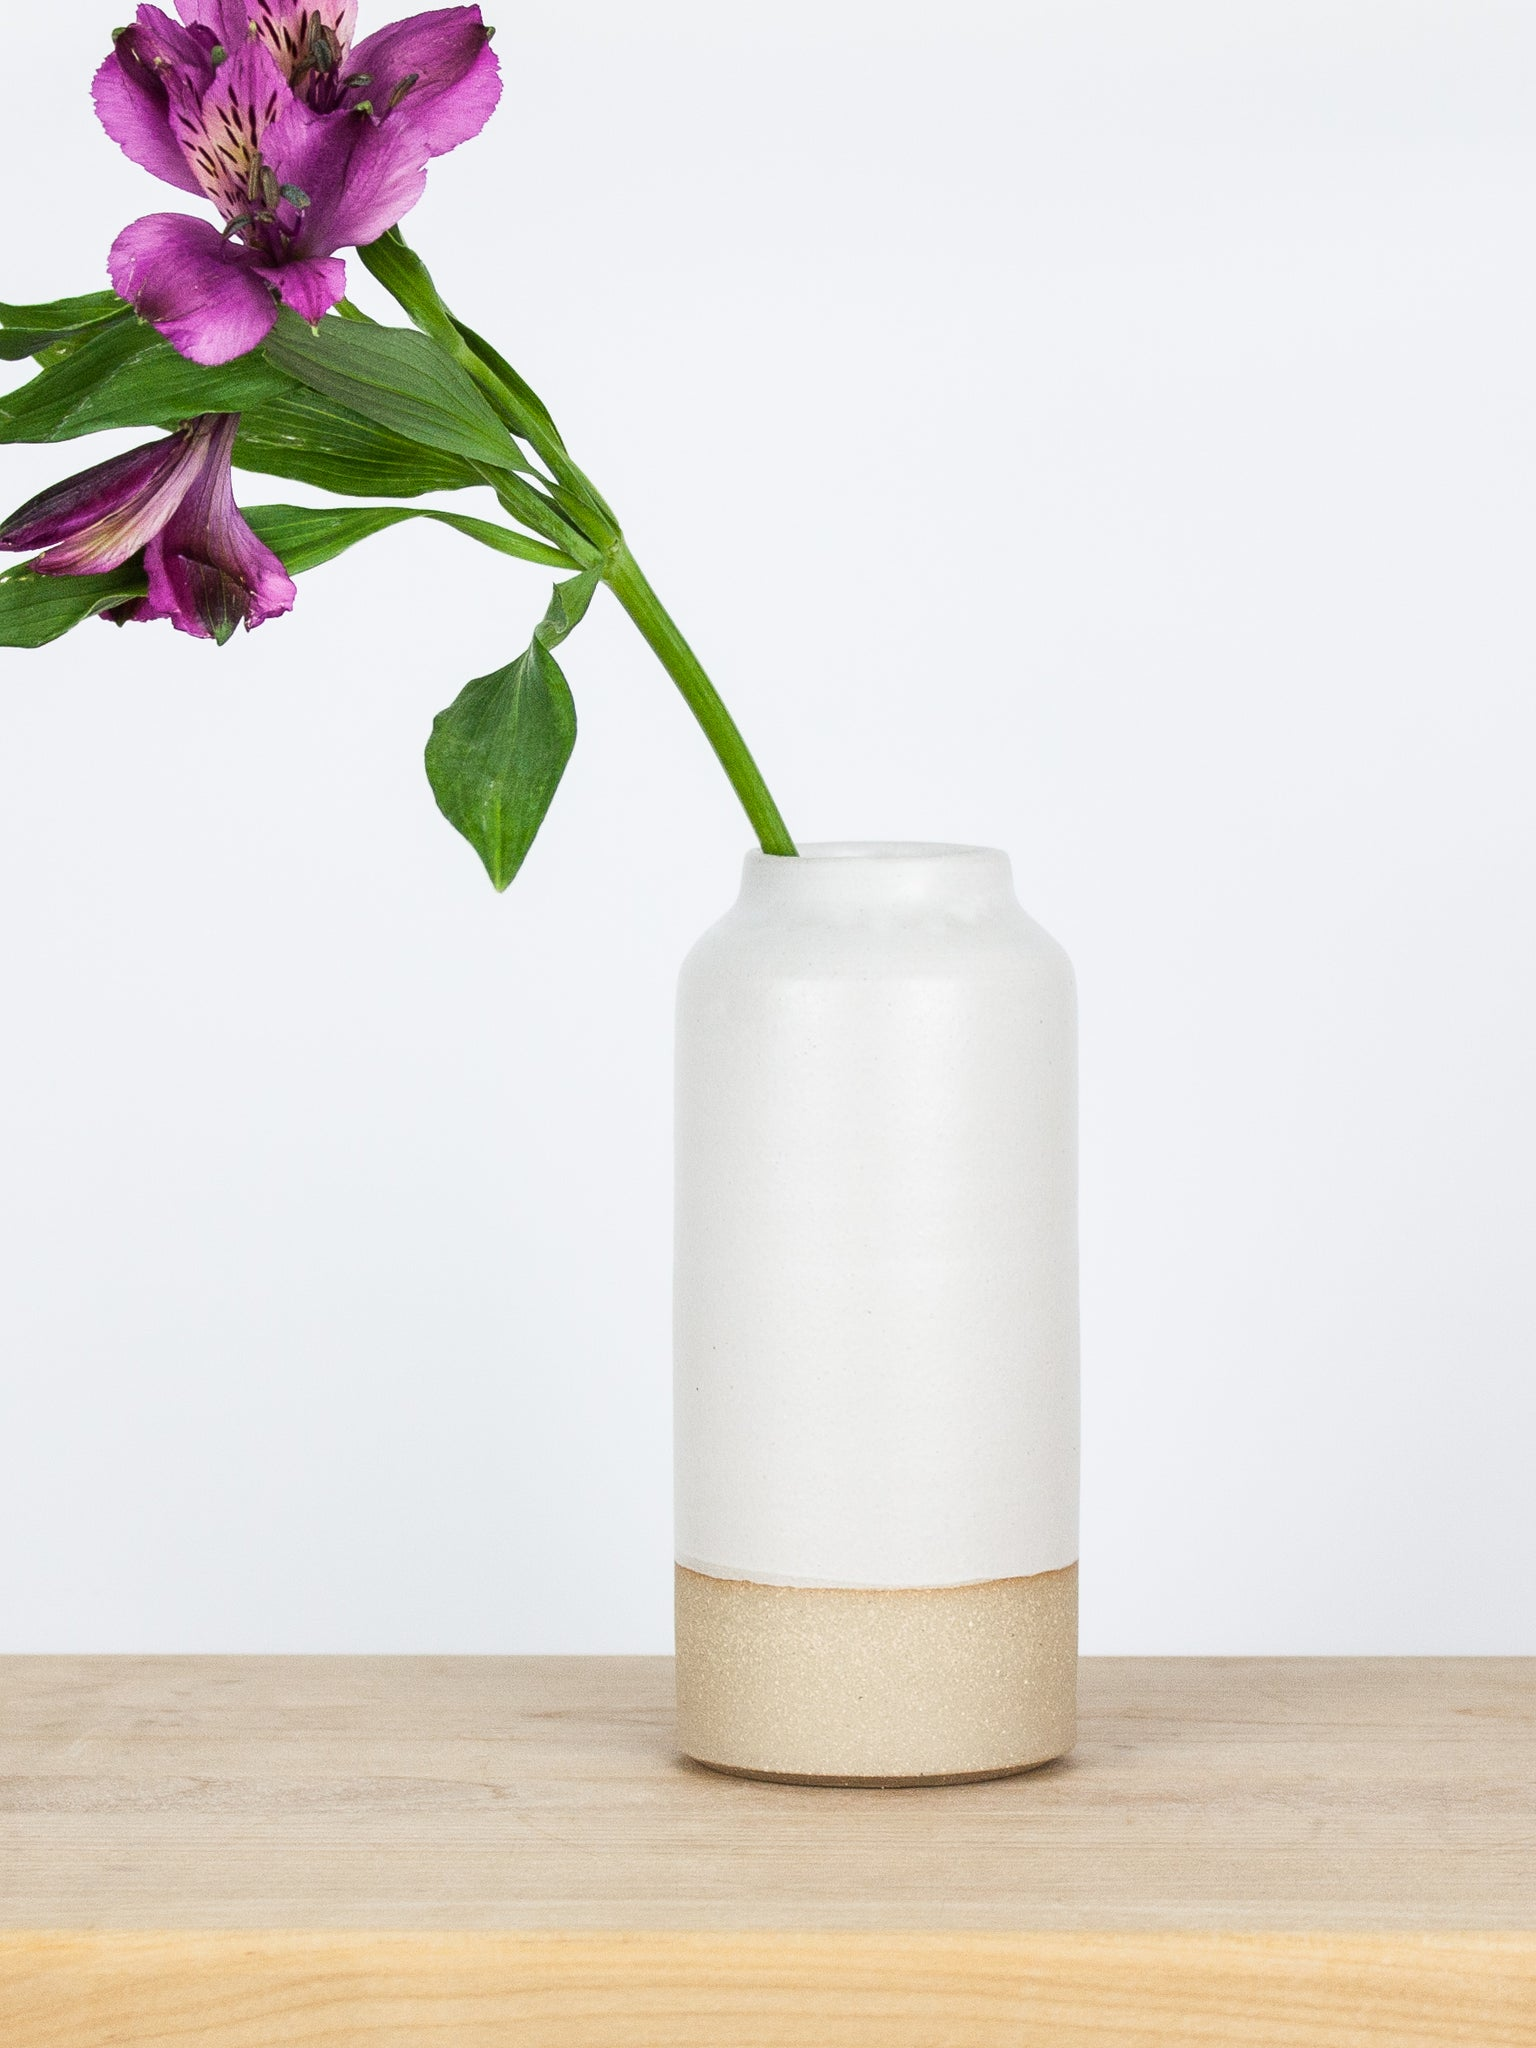 Medium White Bottle Vase